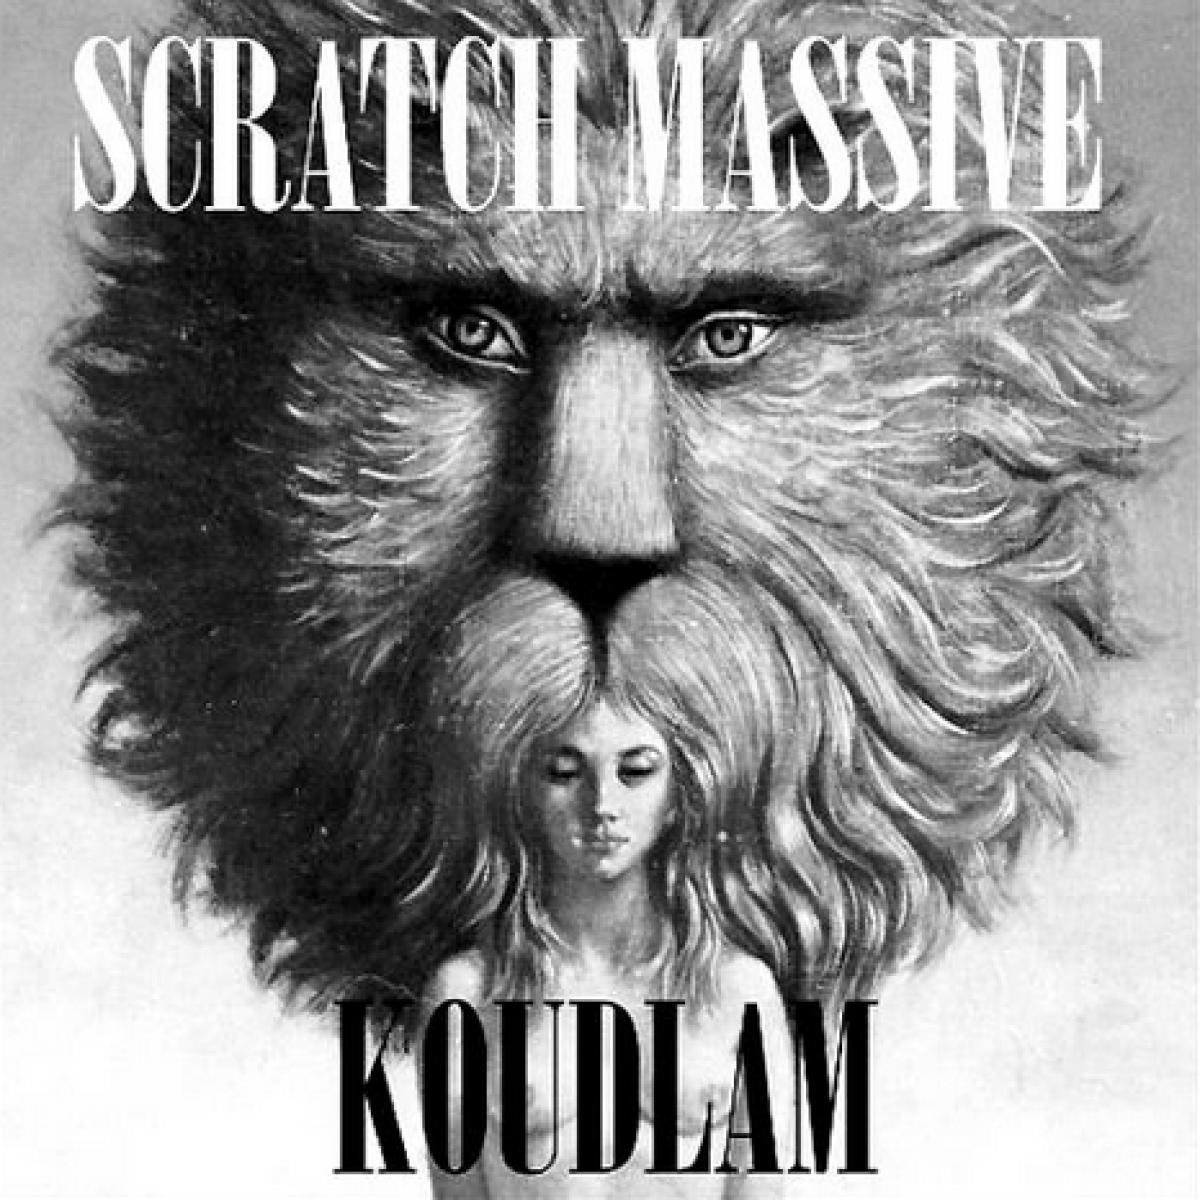 Scratch Massive Feat.Koudlam <br />«Waiting for a Sign» EP<br />2011 Pschent<br />Recordings/Producers